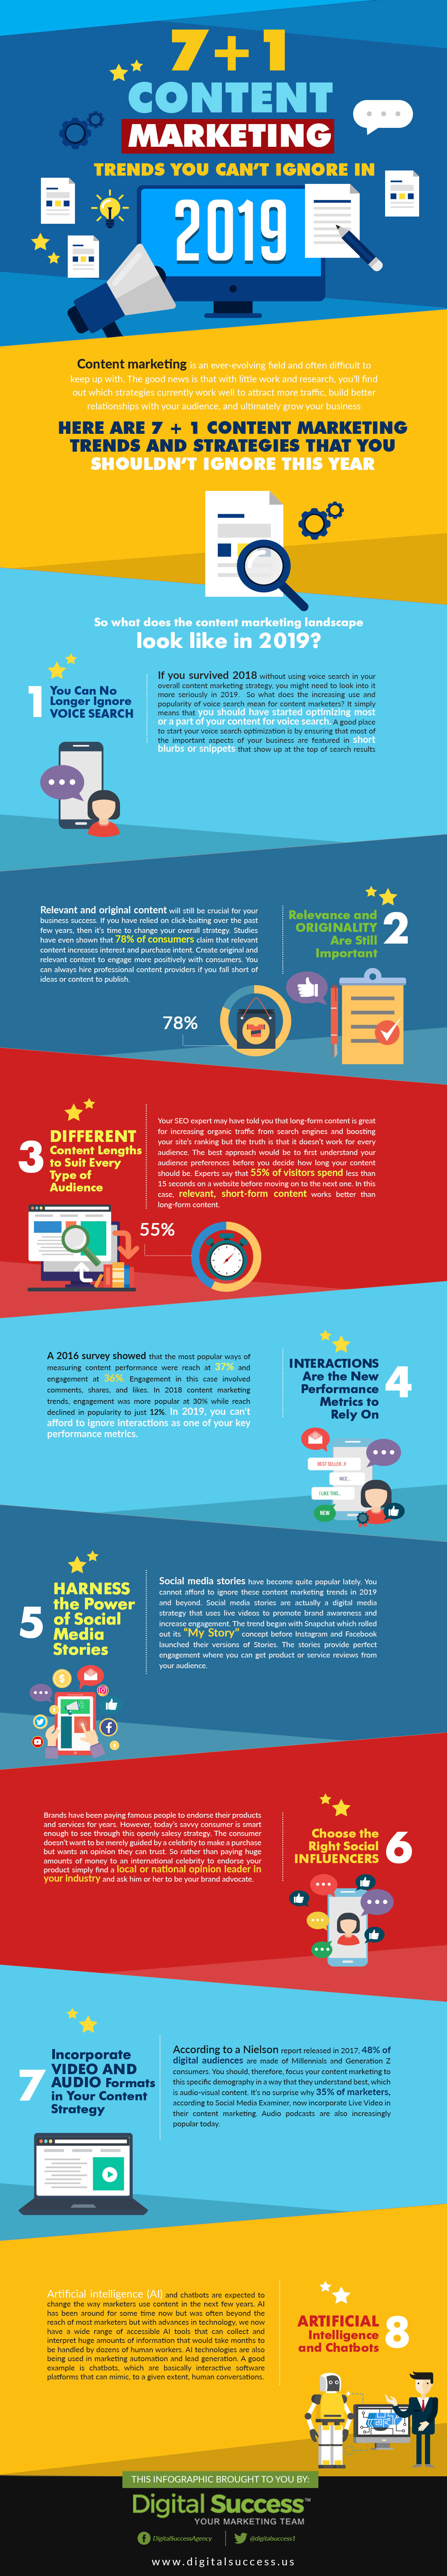 7+1 Content Marketing Trends - Infographic